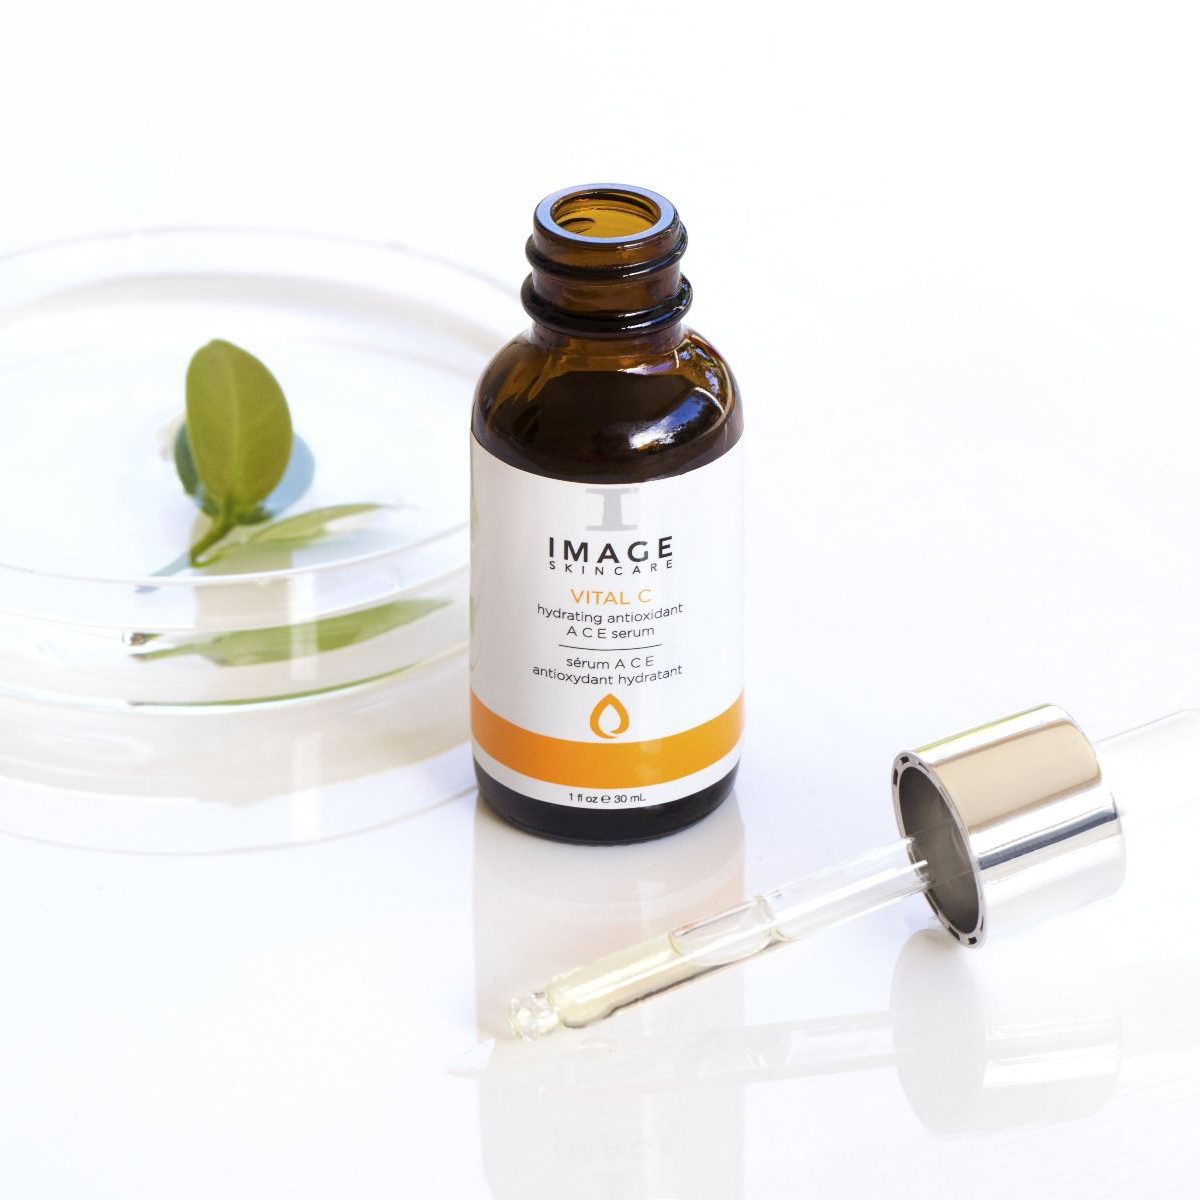 Buy Image Skincare Vital C Hydrating Antioxidant A C E Serum Shop